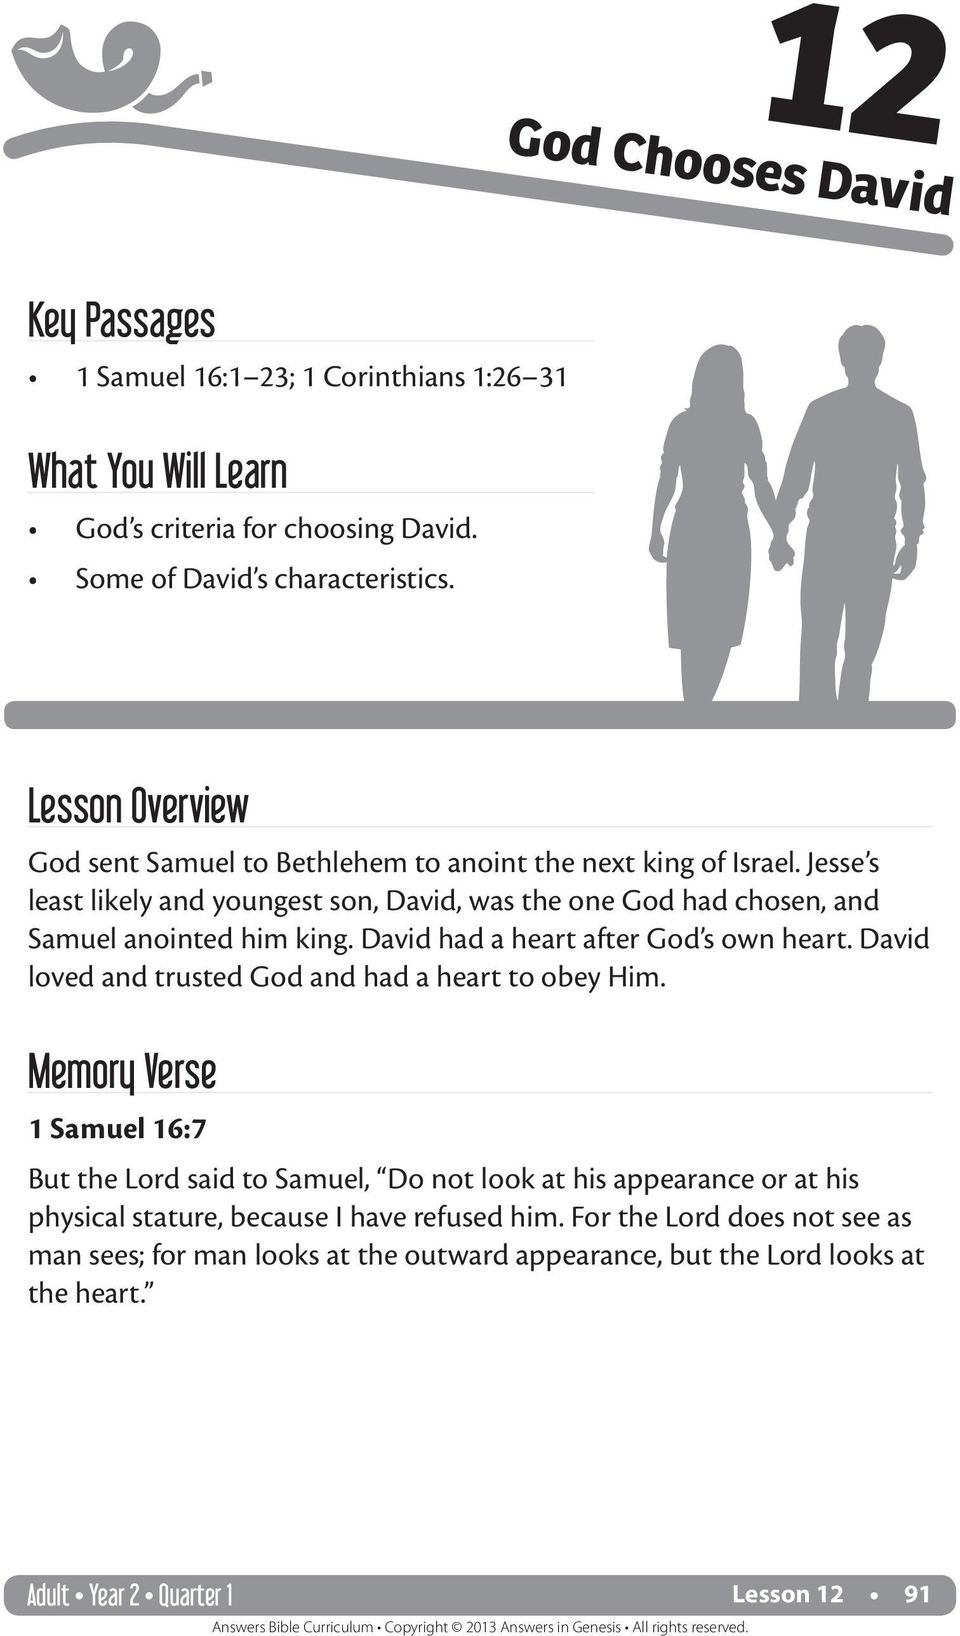 David had a heart after God s own heart. David loved and trusted God and had a heart to obey Him.